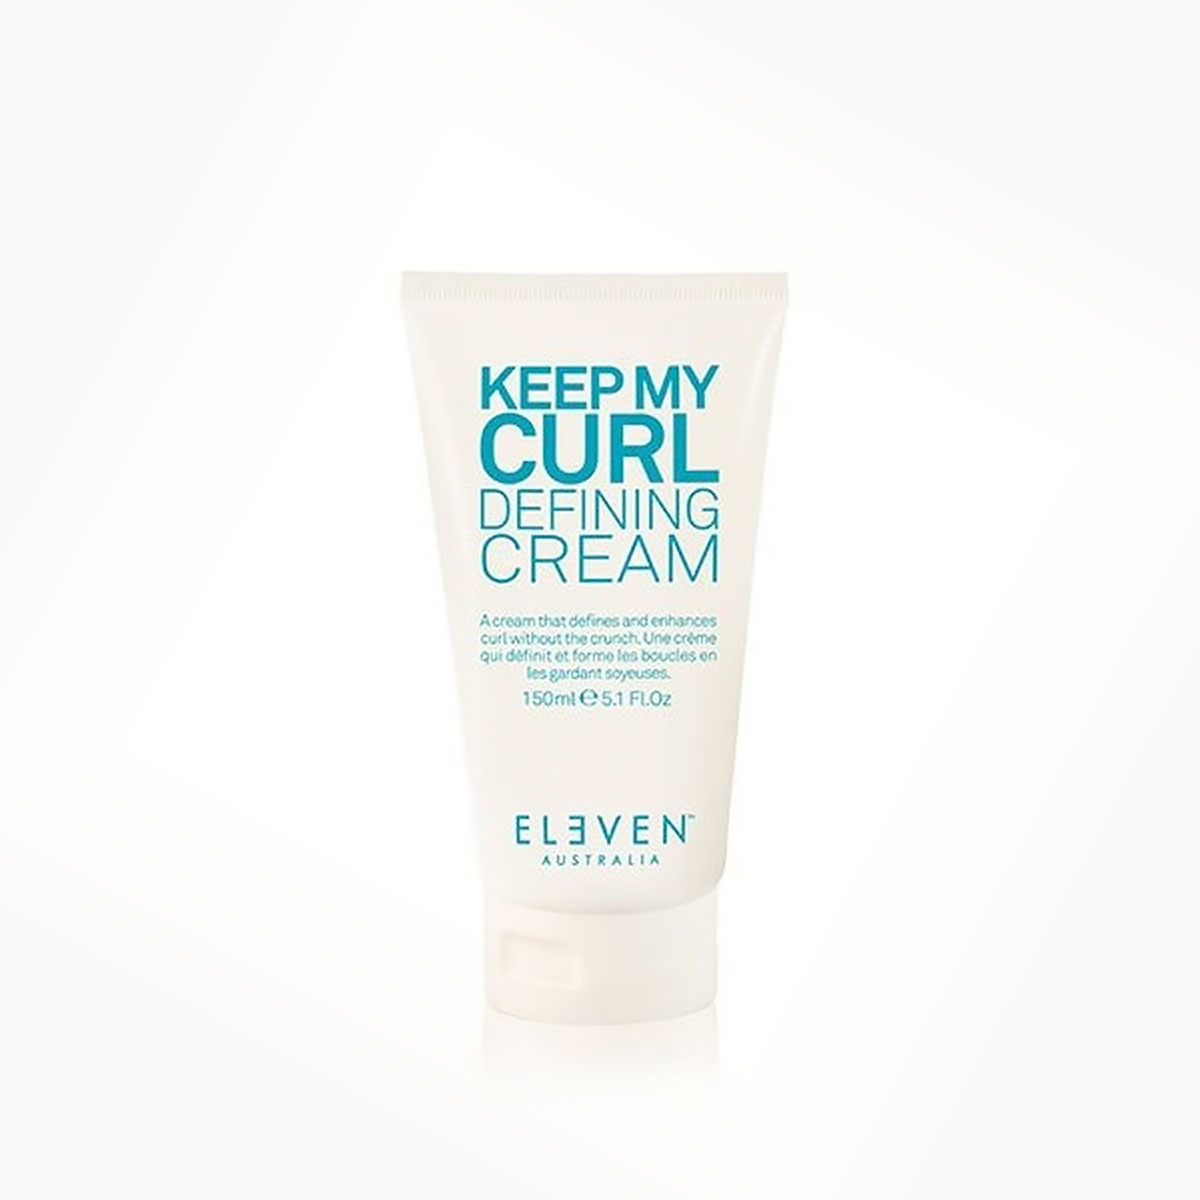 Keep My Curl Defining Cream 150ml | Eleven